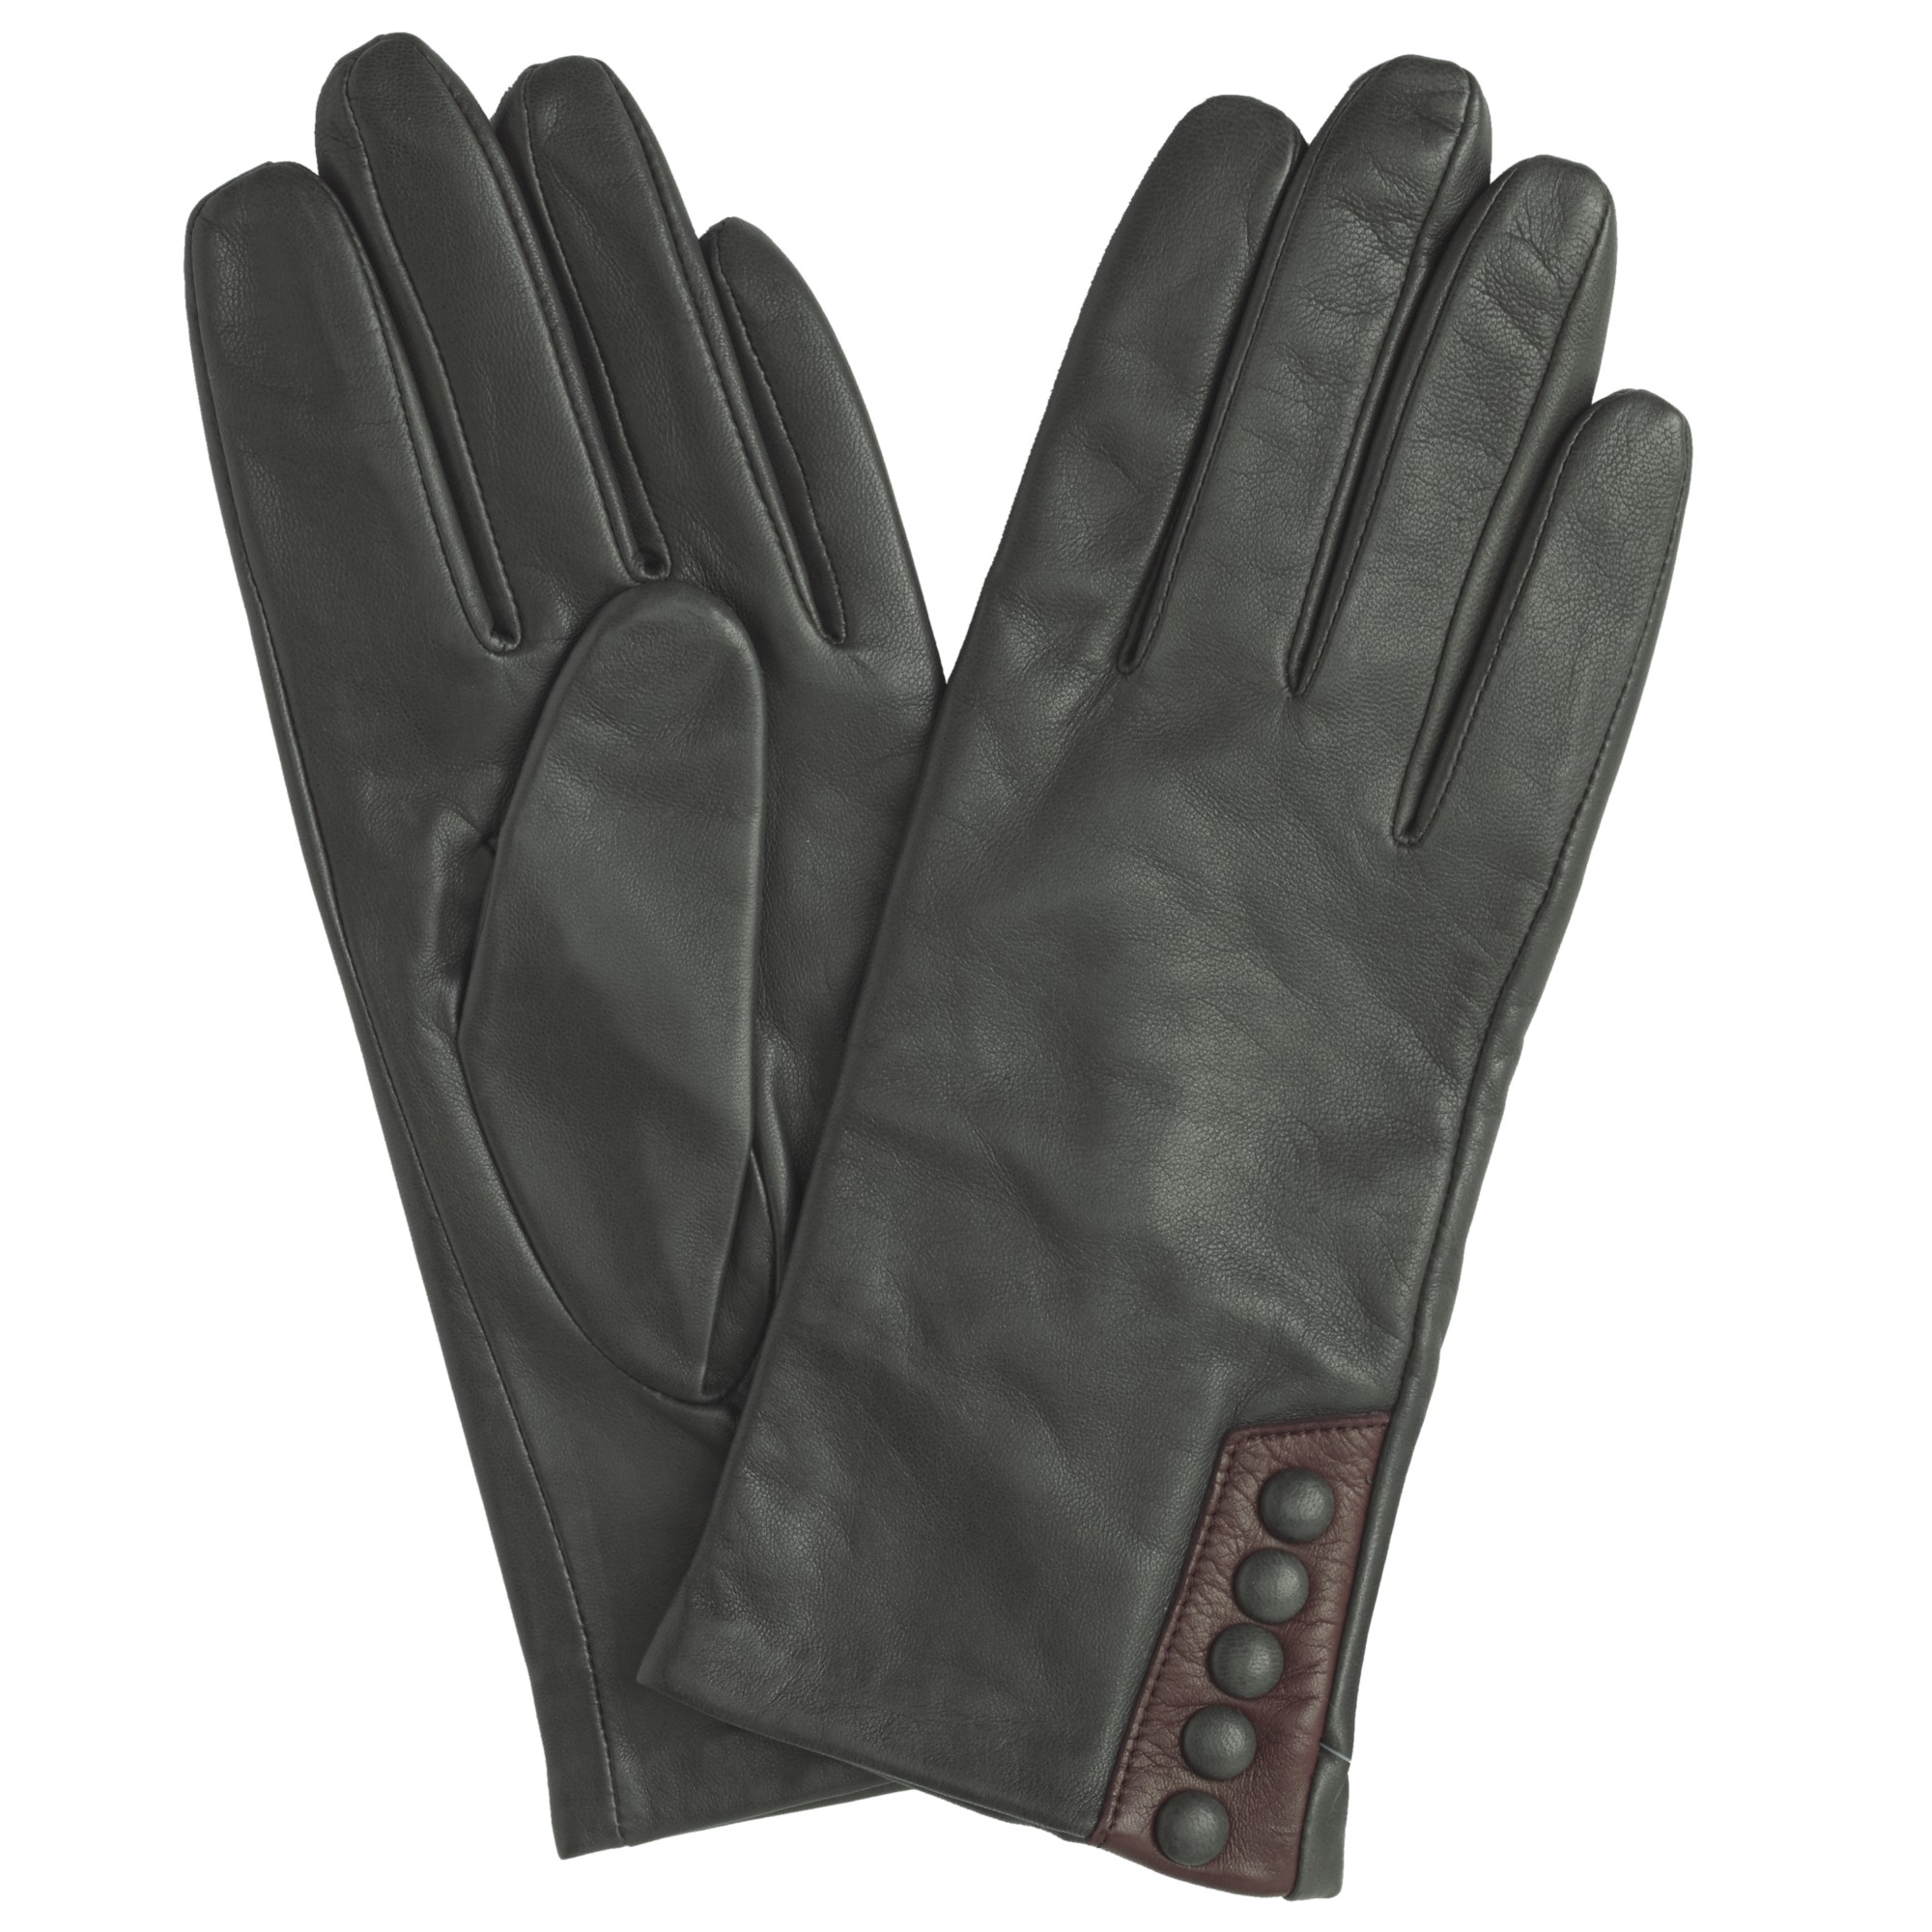 John lewis gray 5 button leather gloves lyst